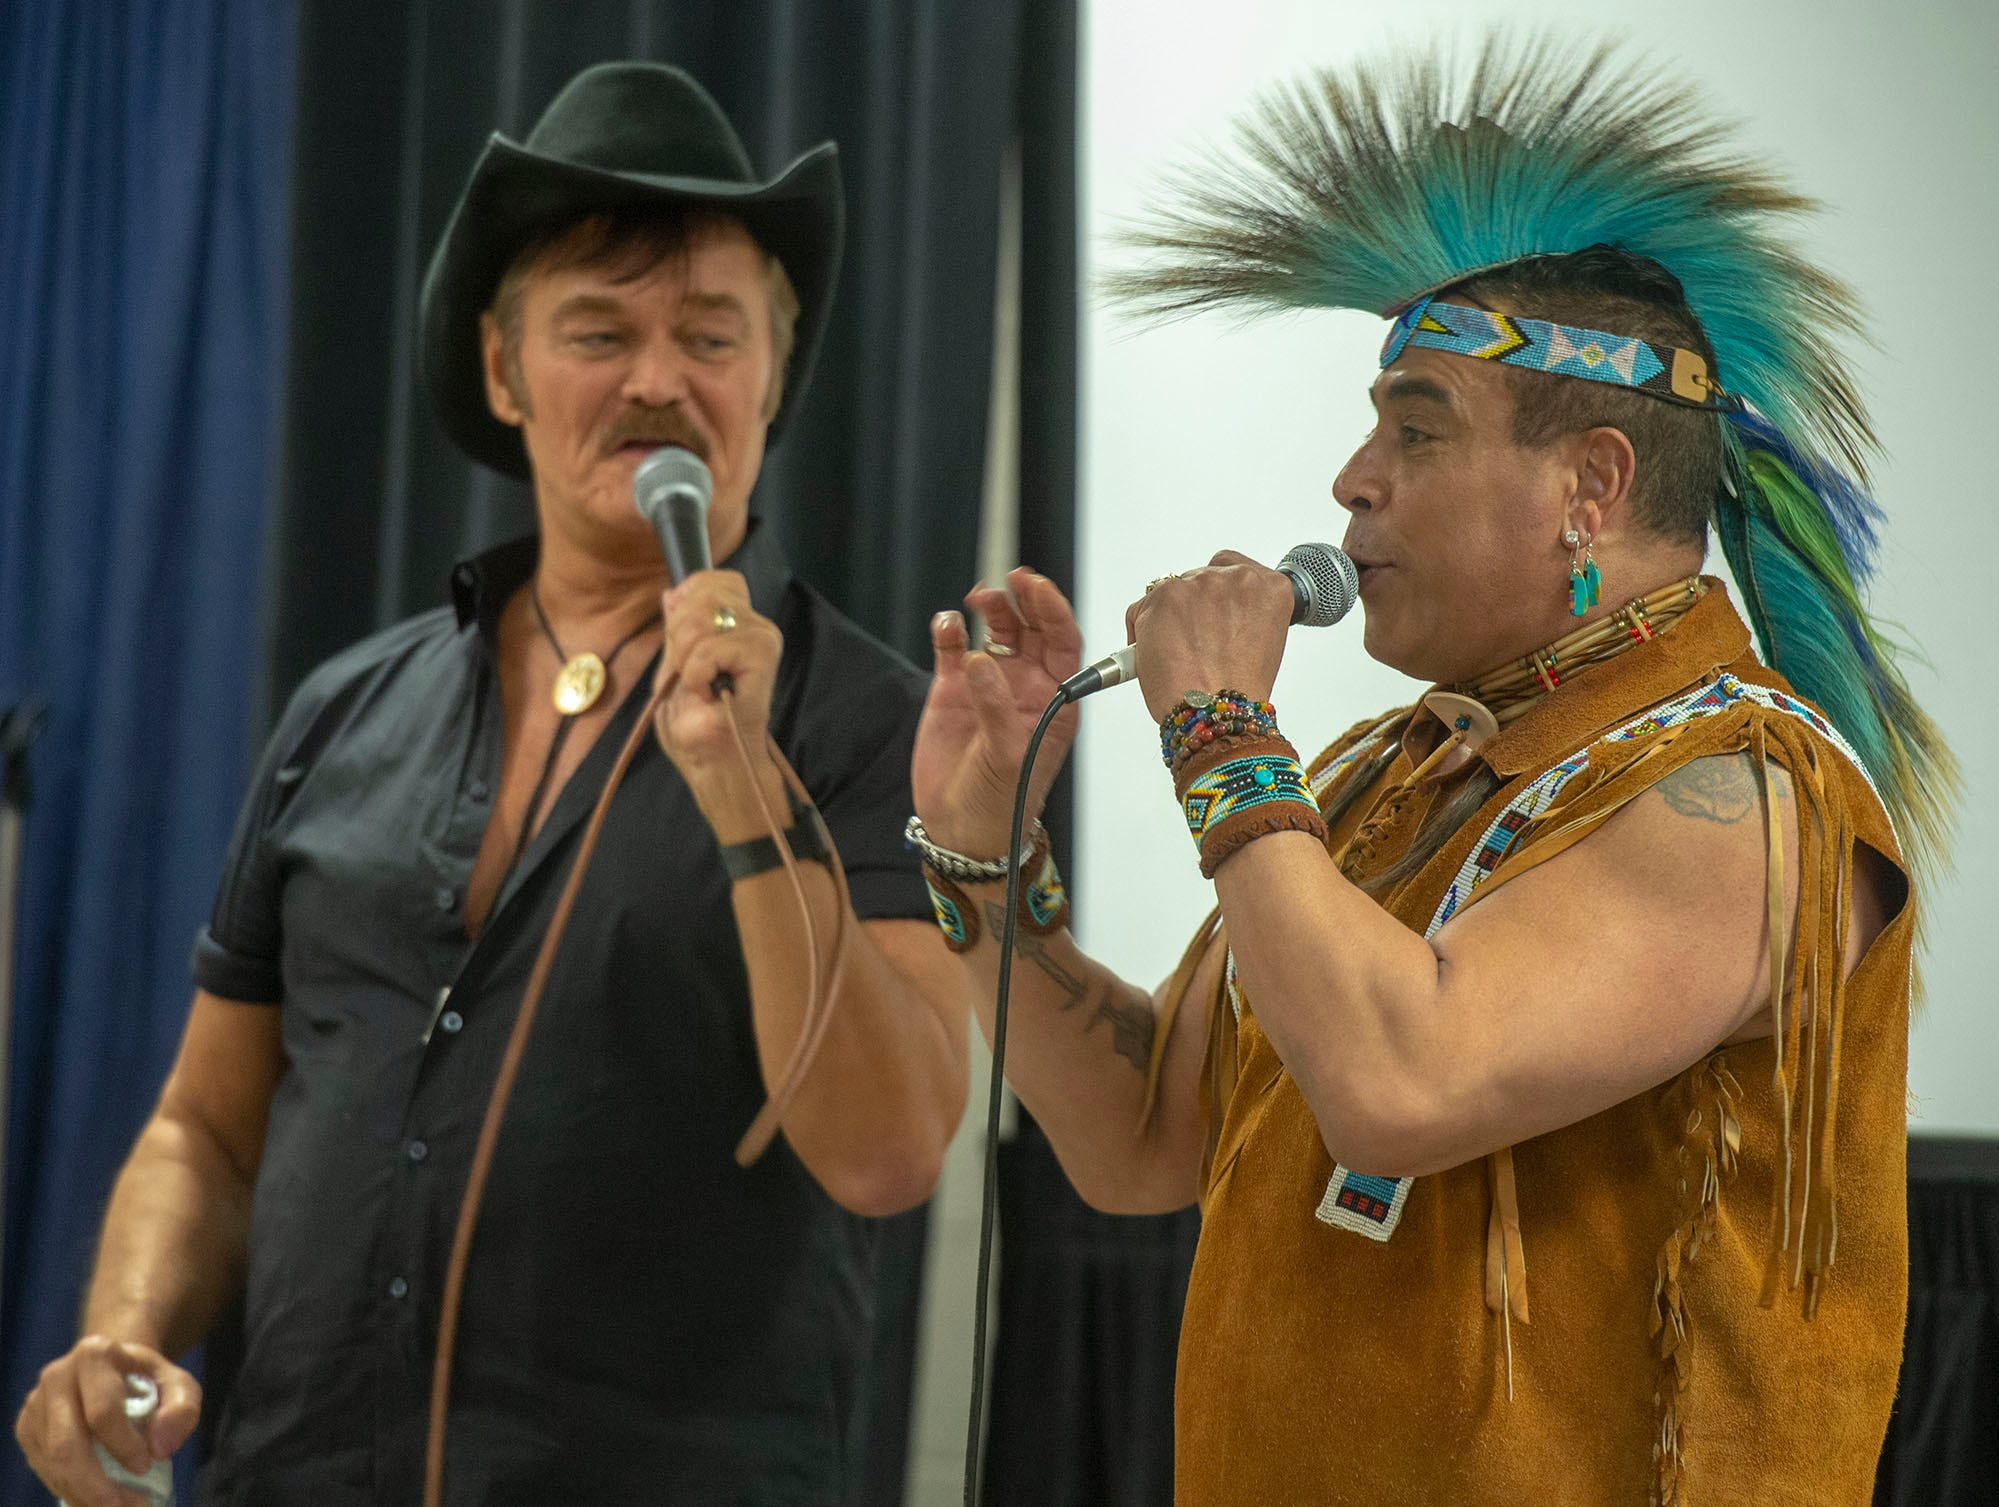 Randy Jones, left, and Felipe Rose were among the founding members of Village People. They performed Saturday at the White Rose Comic Con, which runs through Sunday, March 24, 2019 at Utz Arena of the York Fairgrounds.